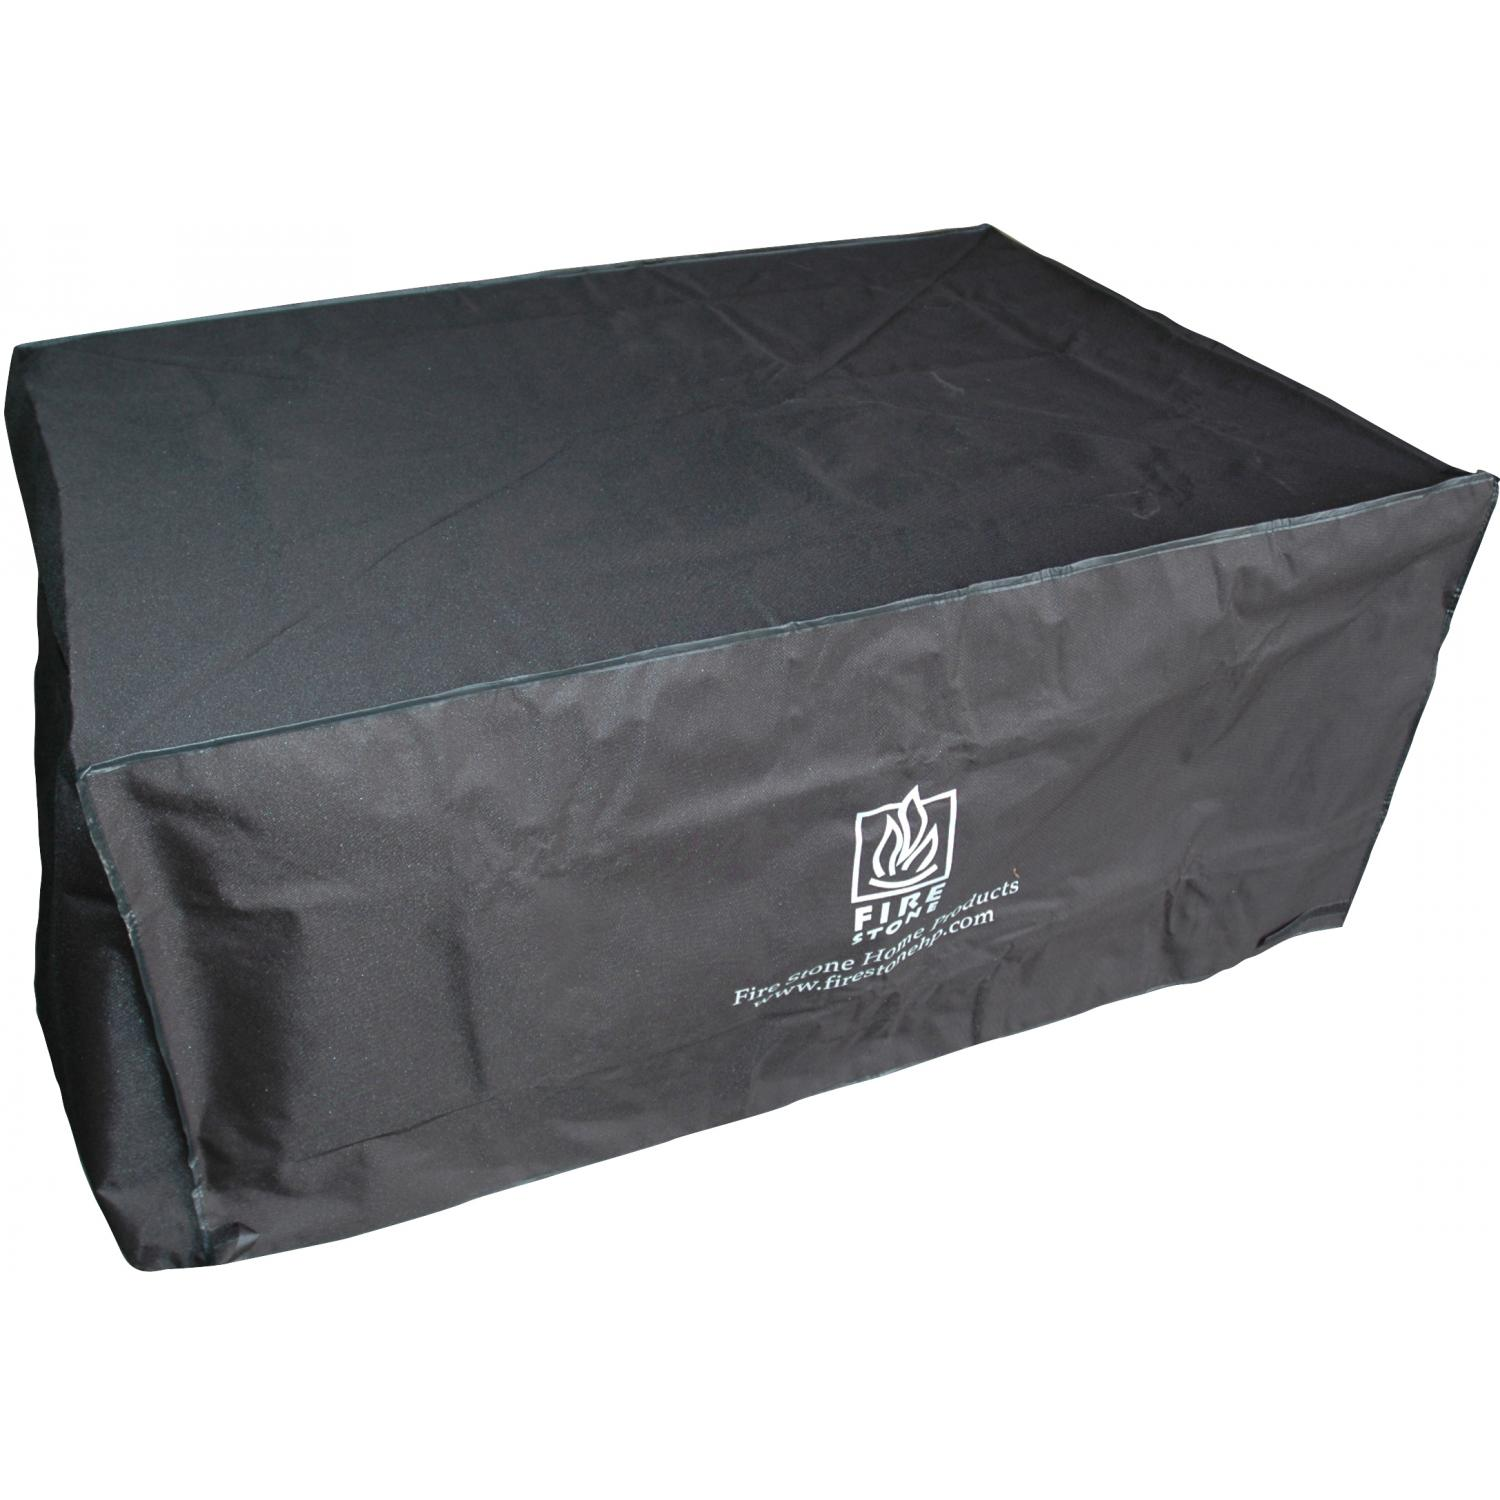 Outdoor GreatRoom Company Black Vinyl Cover For Naples, Sierra, And San Juan Fire Pits